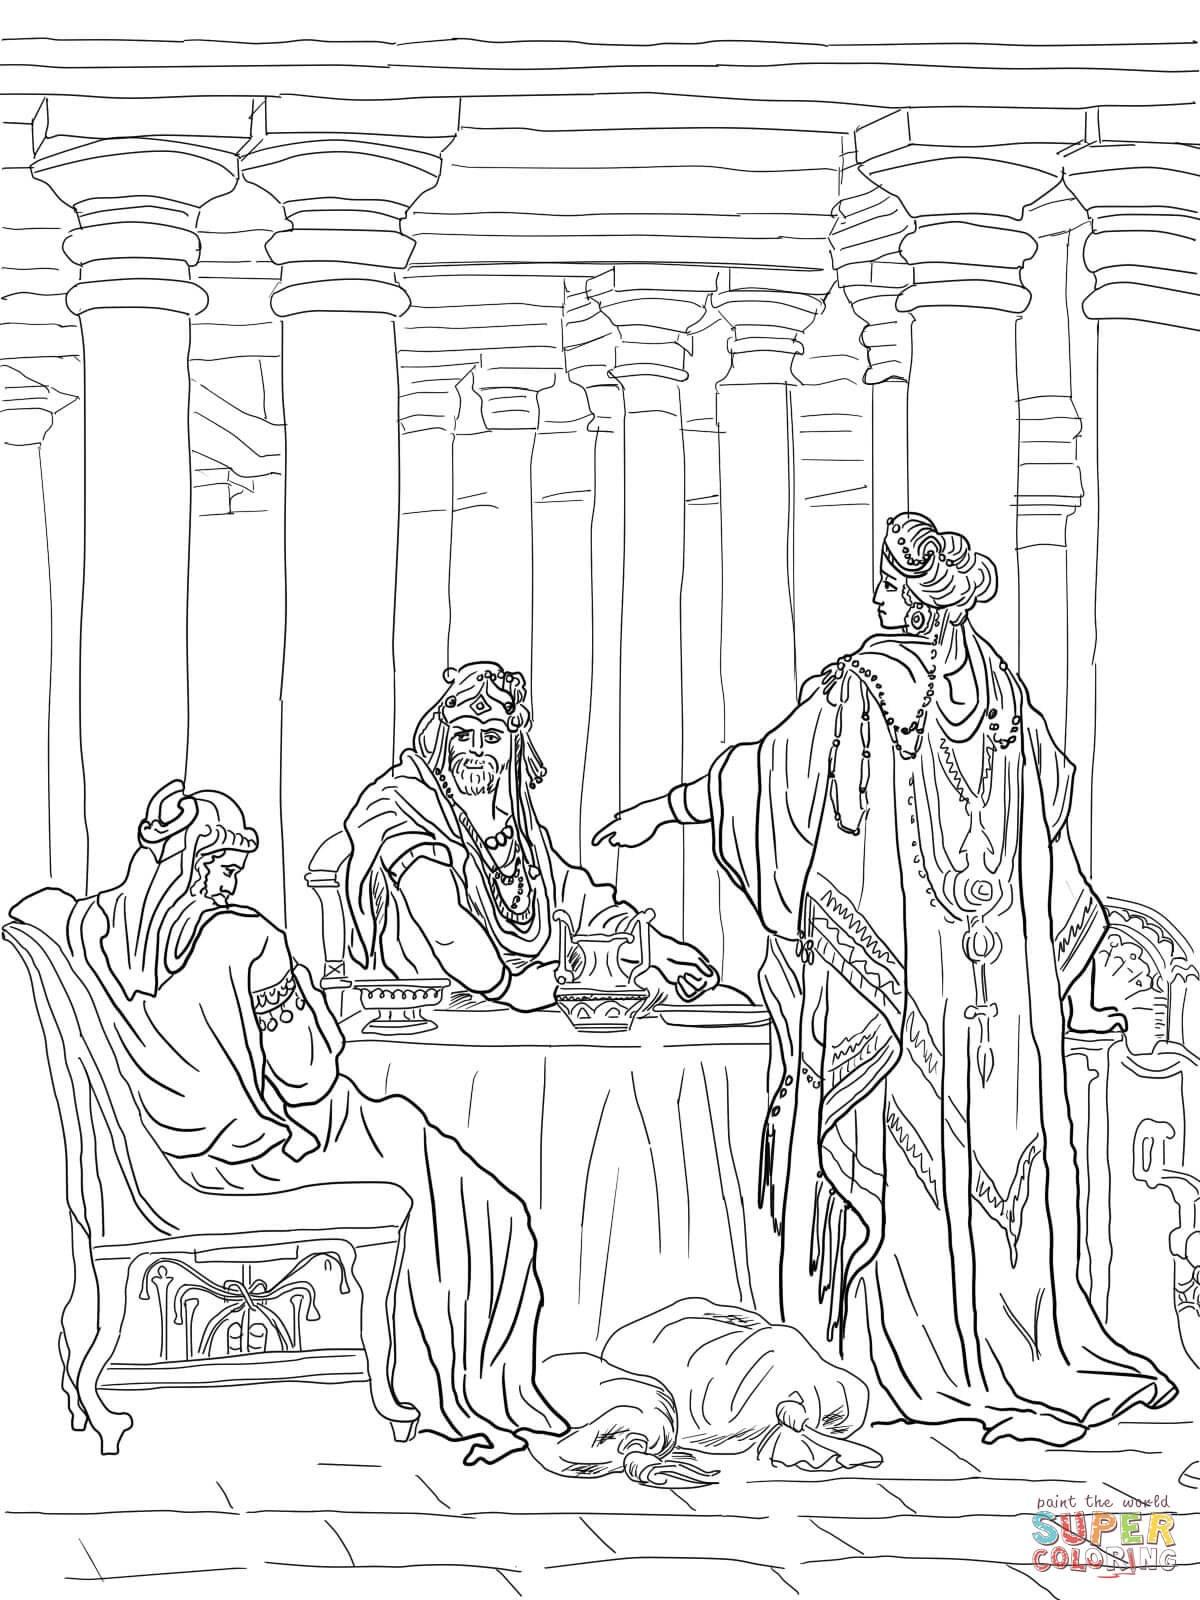 Esther Accusing Haman Coloring Page